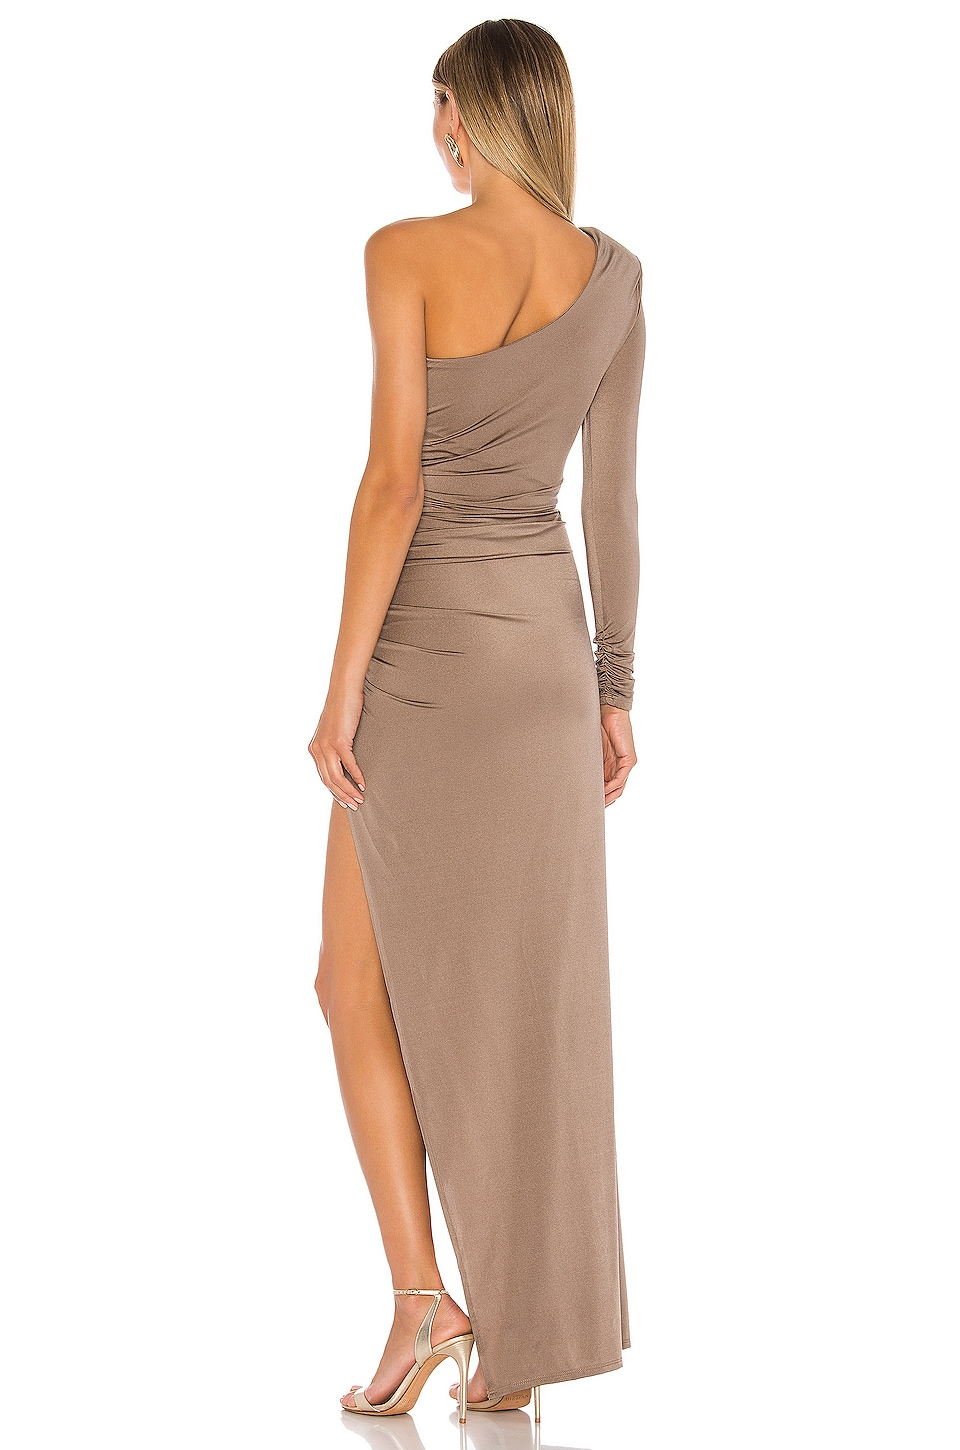 x REVOLVE Gilly Maxi Dress, view 3, click to view large image.